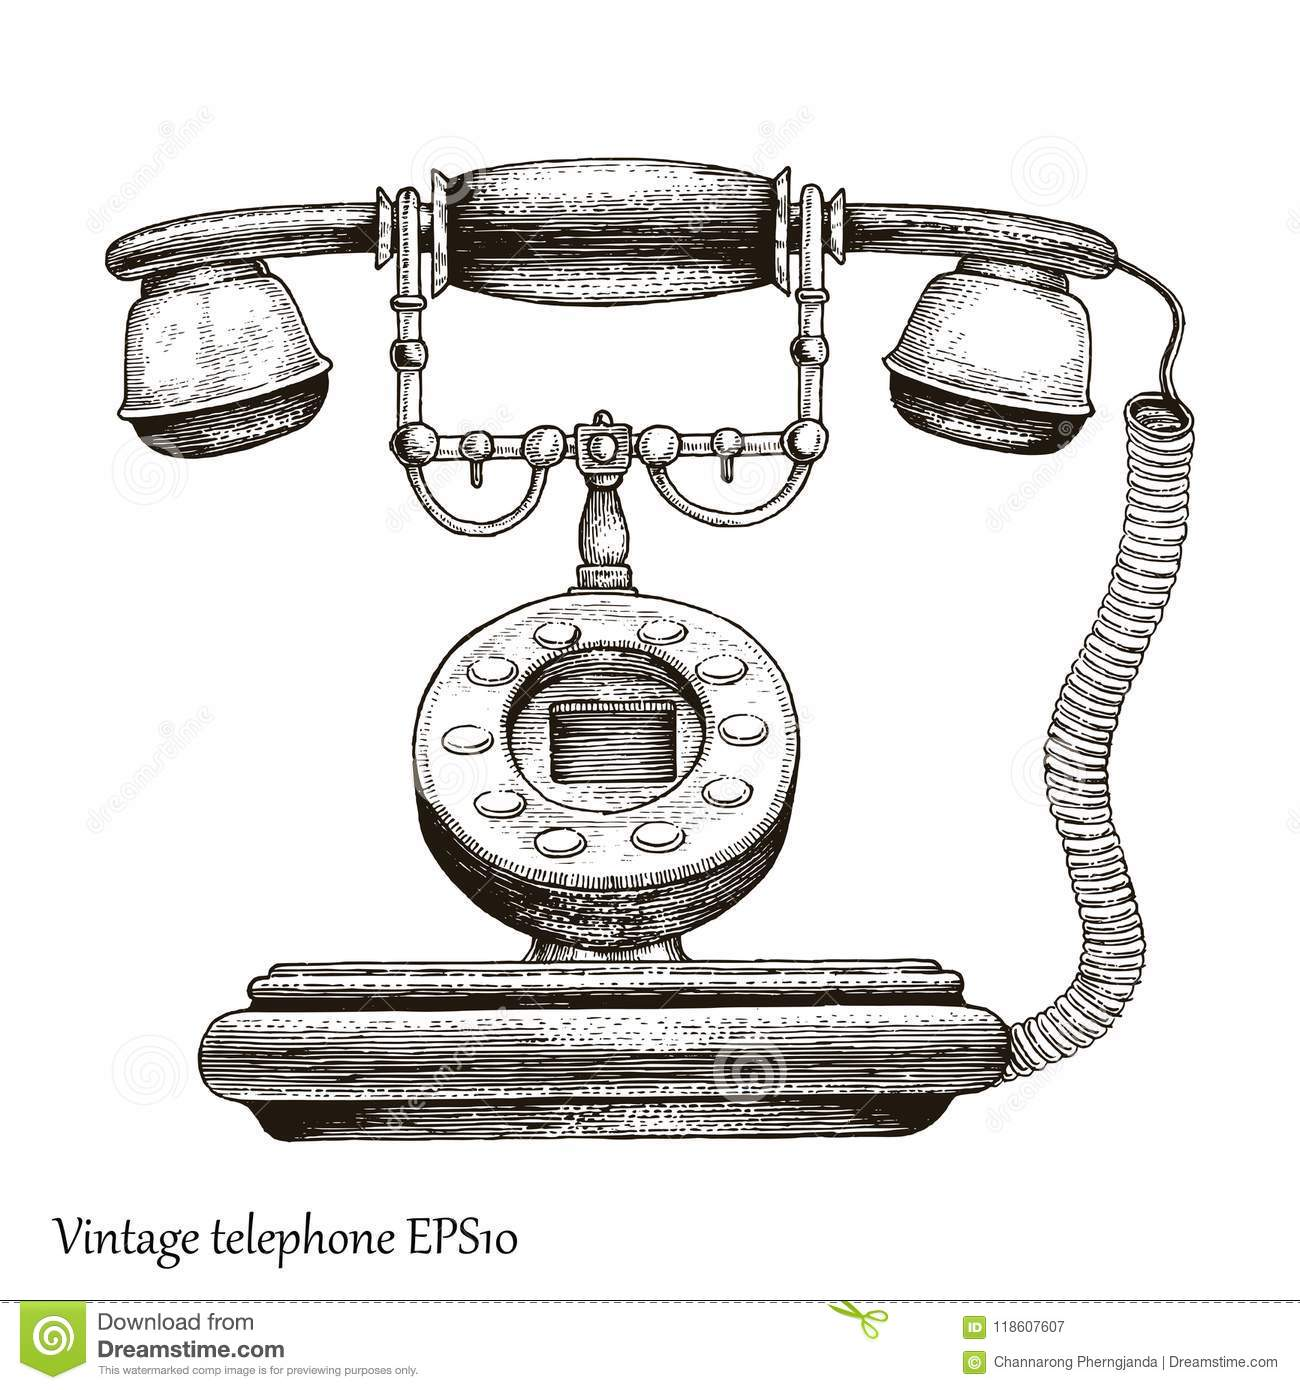 Vintage telephone hand drawing engraving style,Retro phone Initial communication device